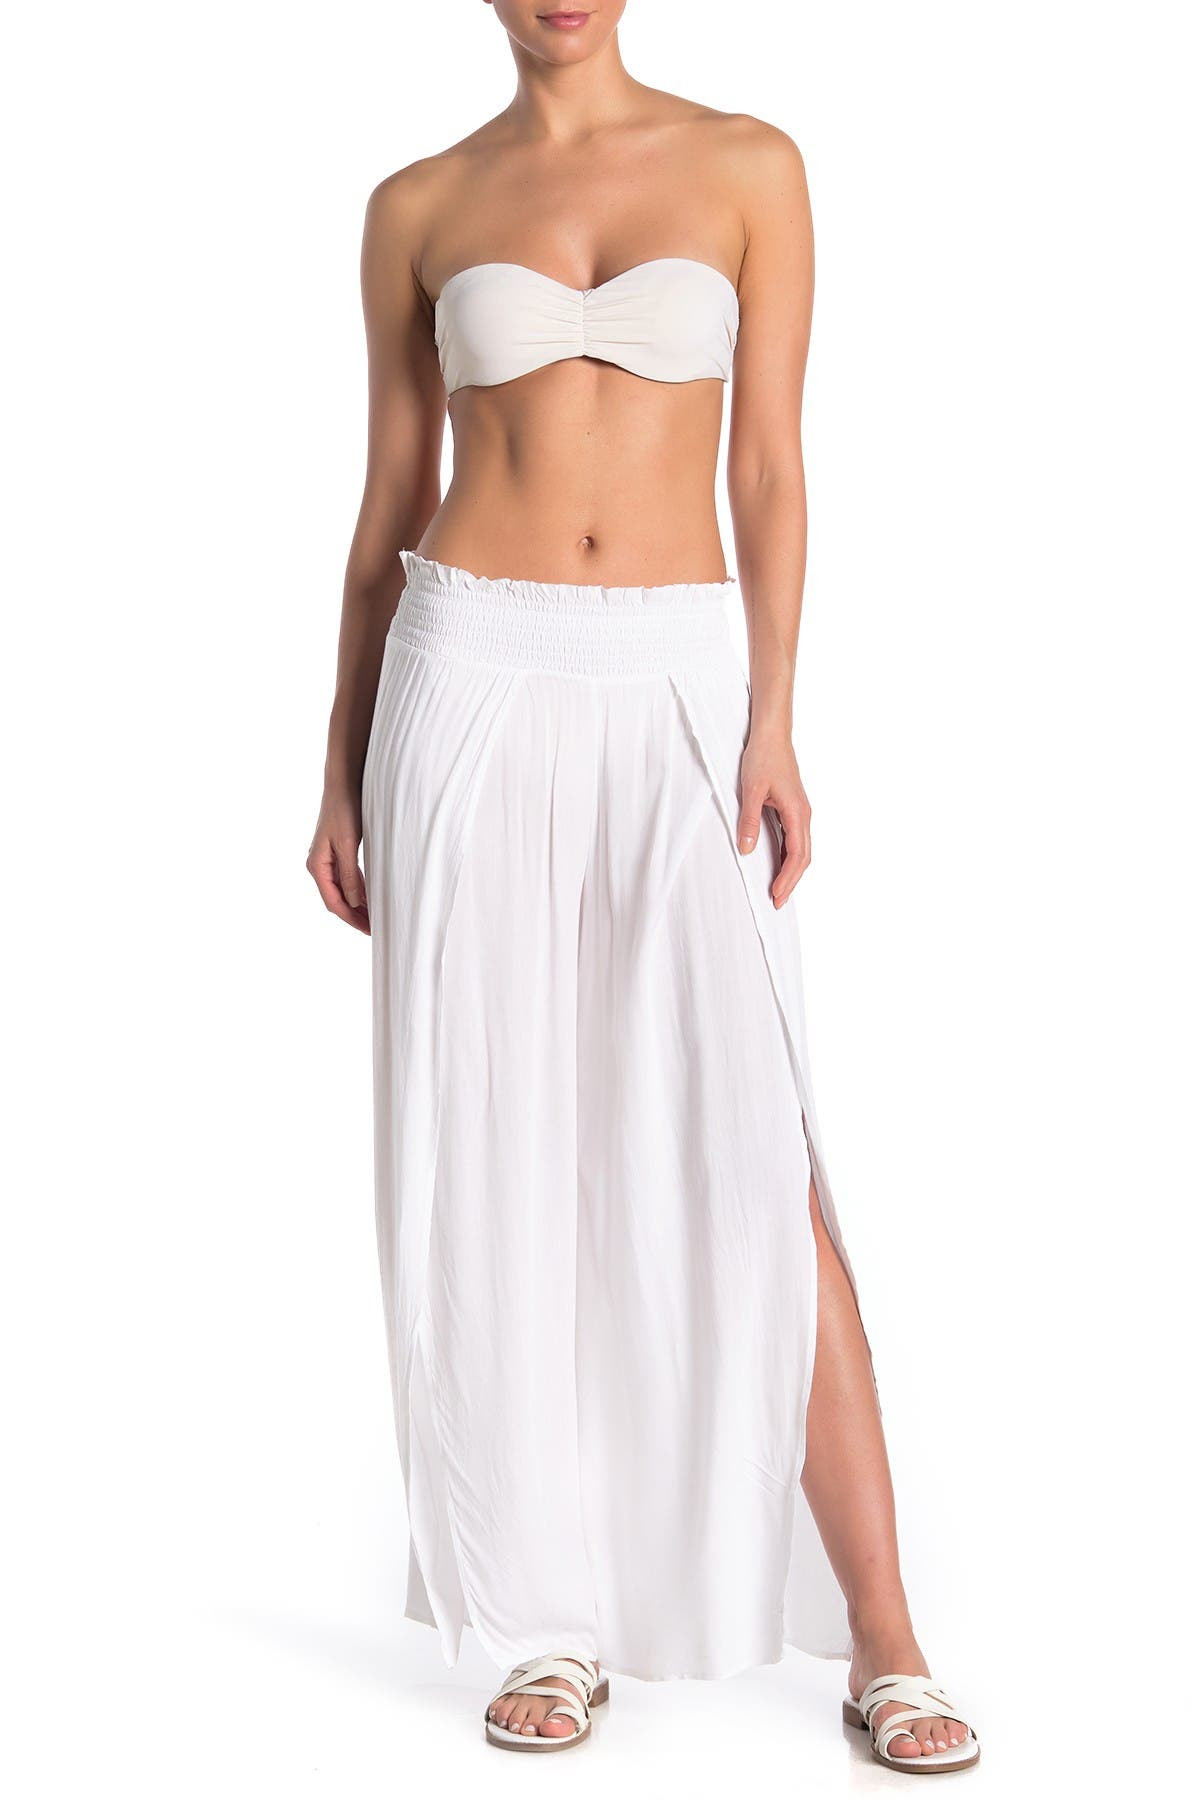 Image of ELAN Popover Knit Cover-Up Pants